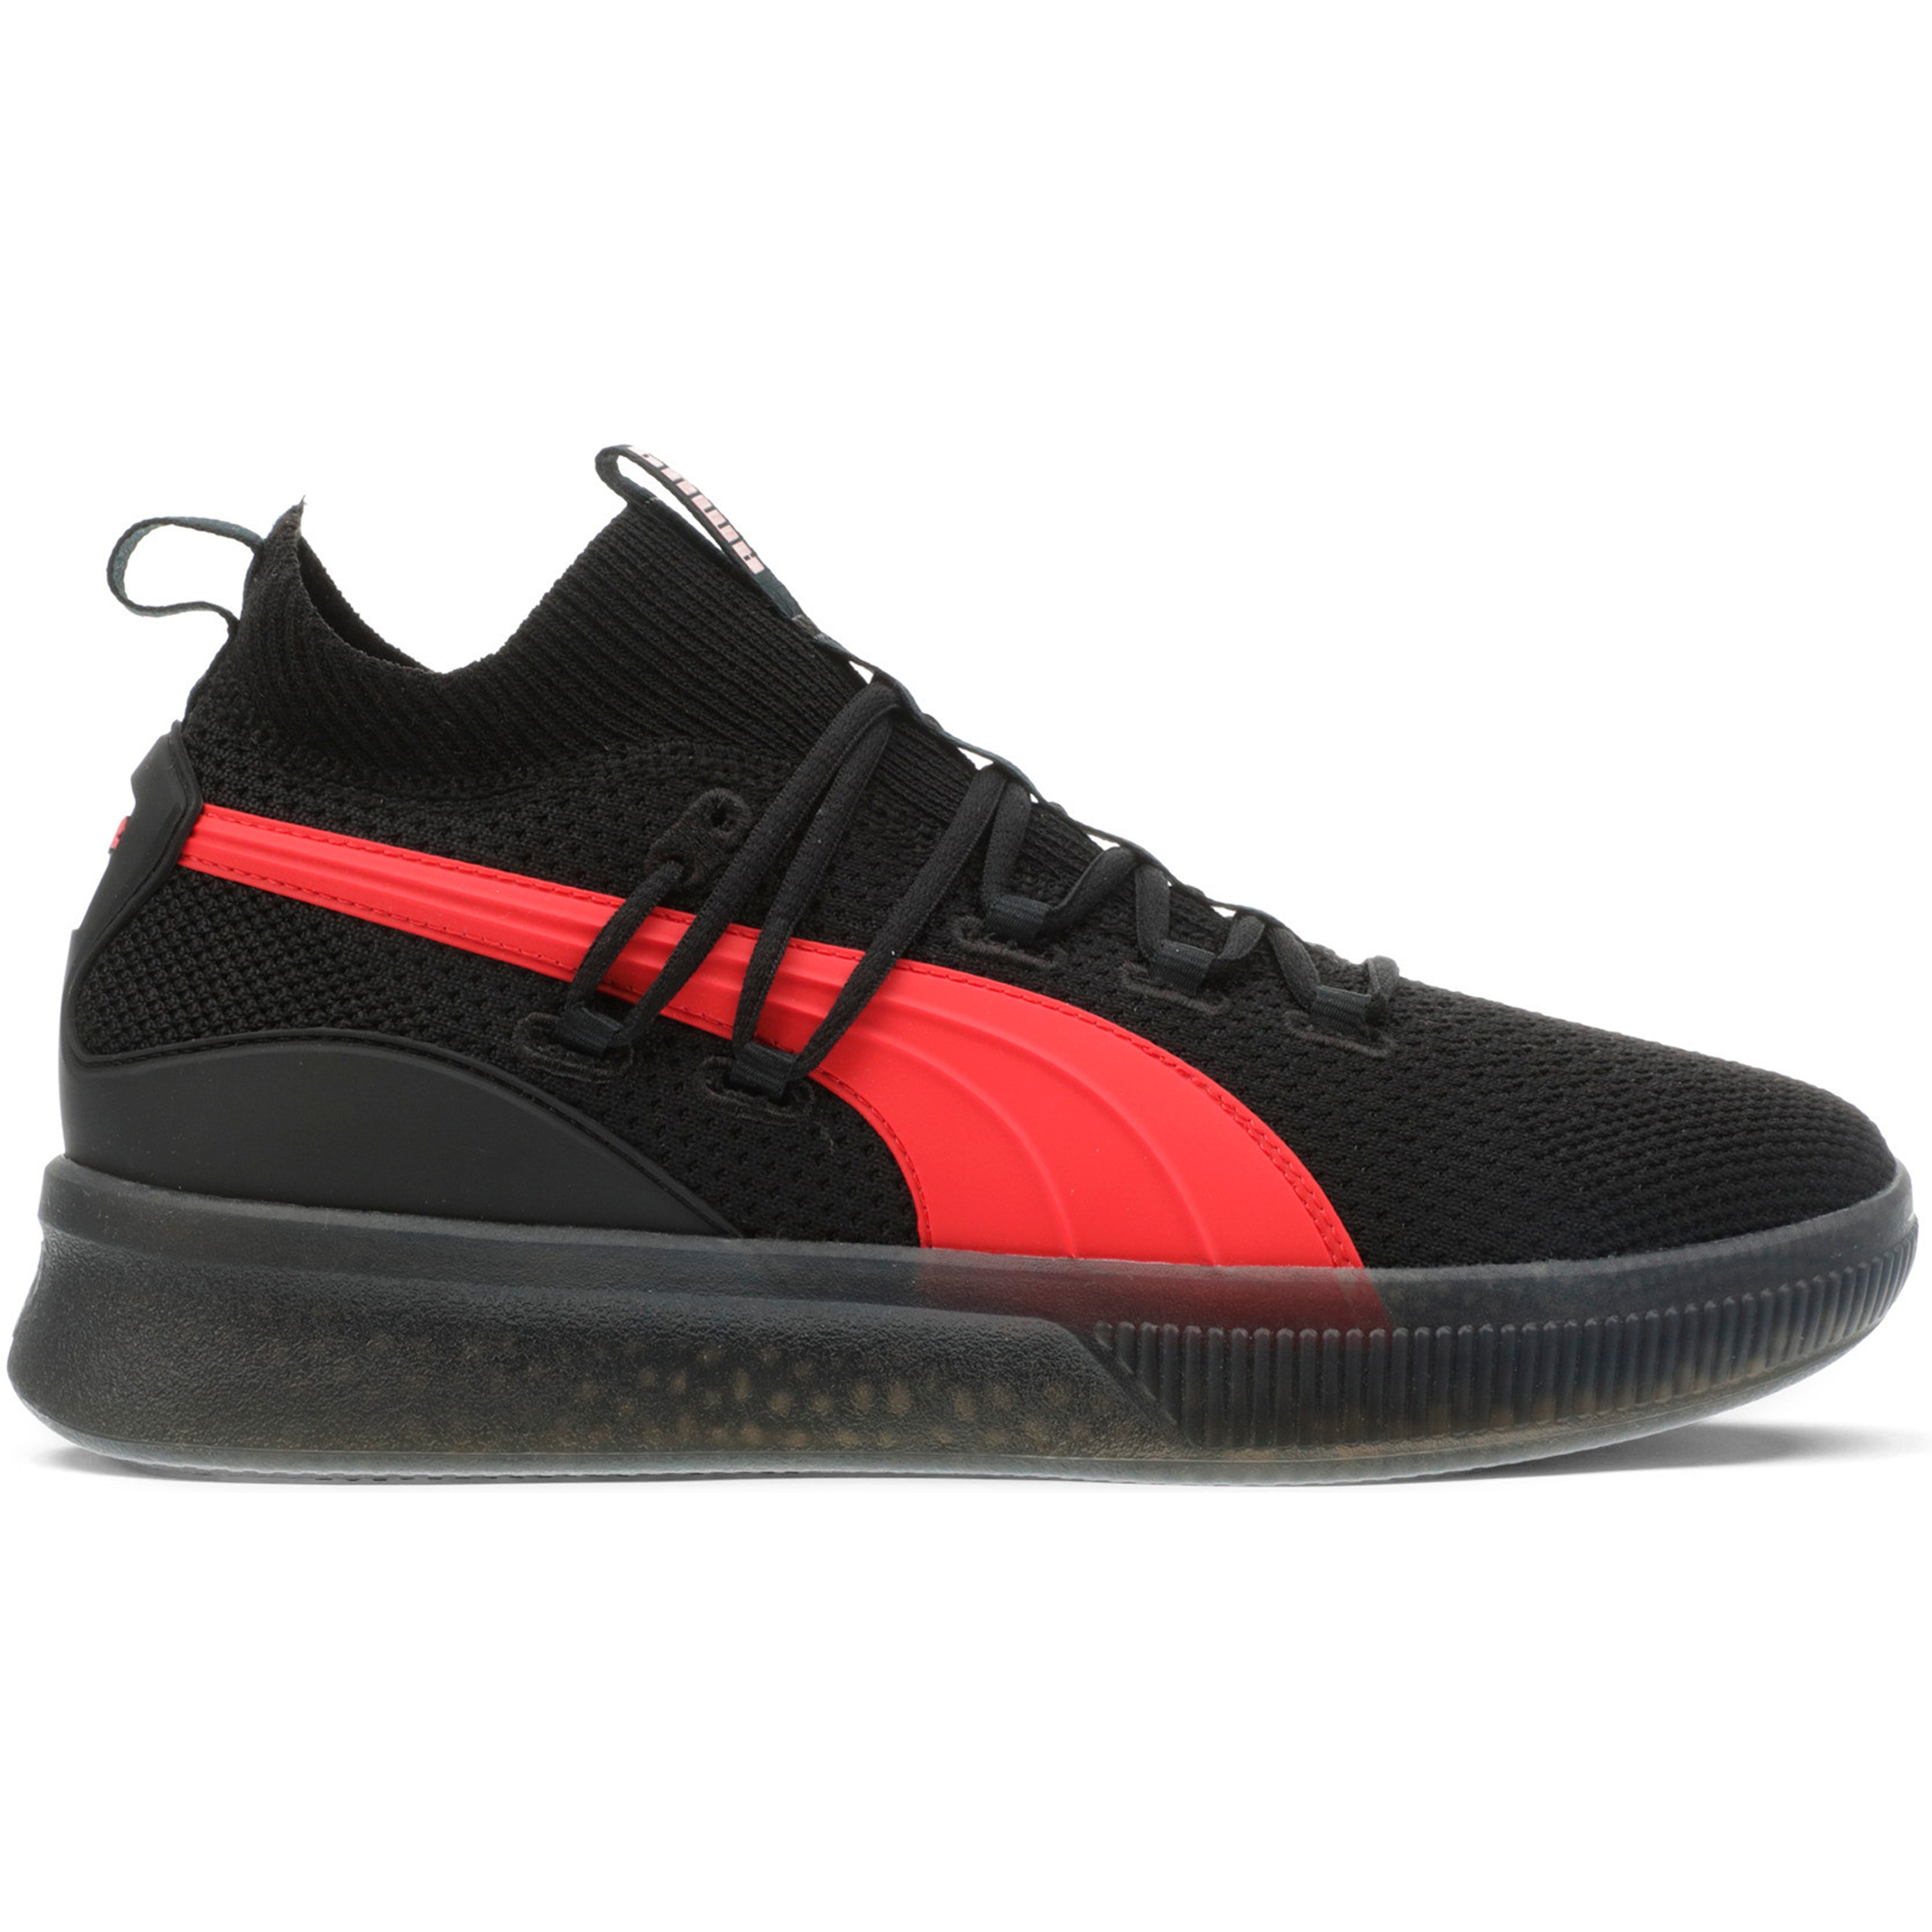 Puma Clyde Court City Pack Chicago Bulls (191712-03)